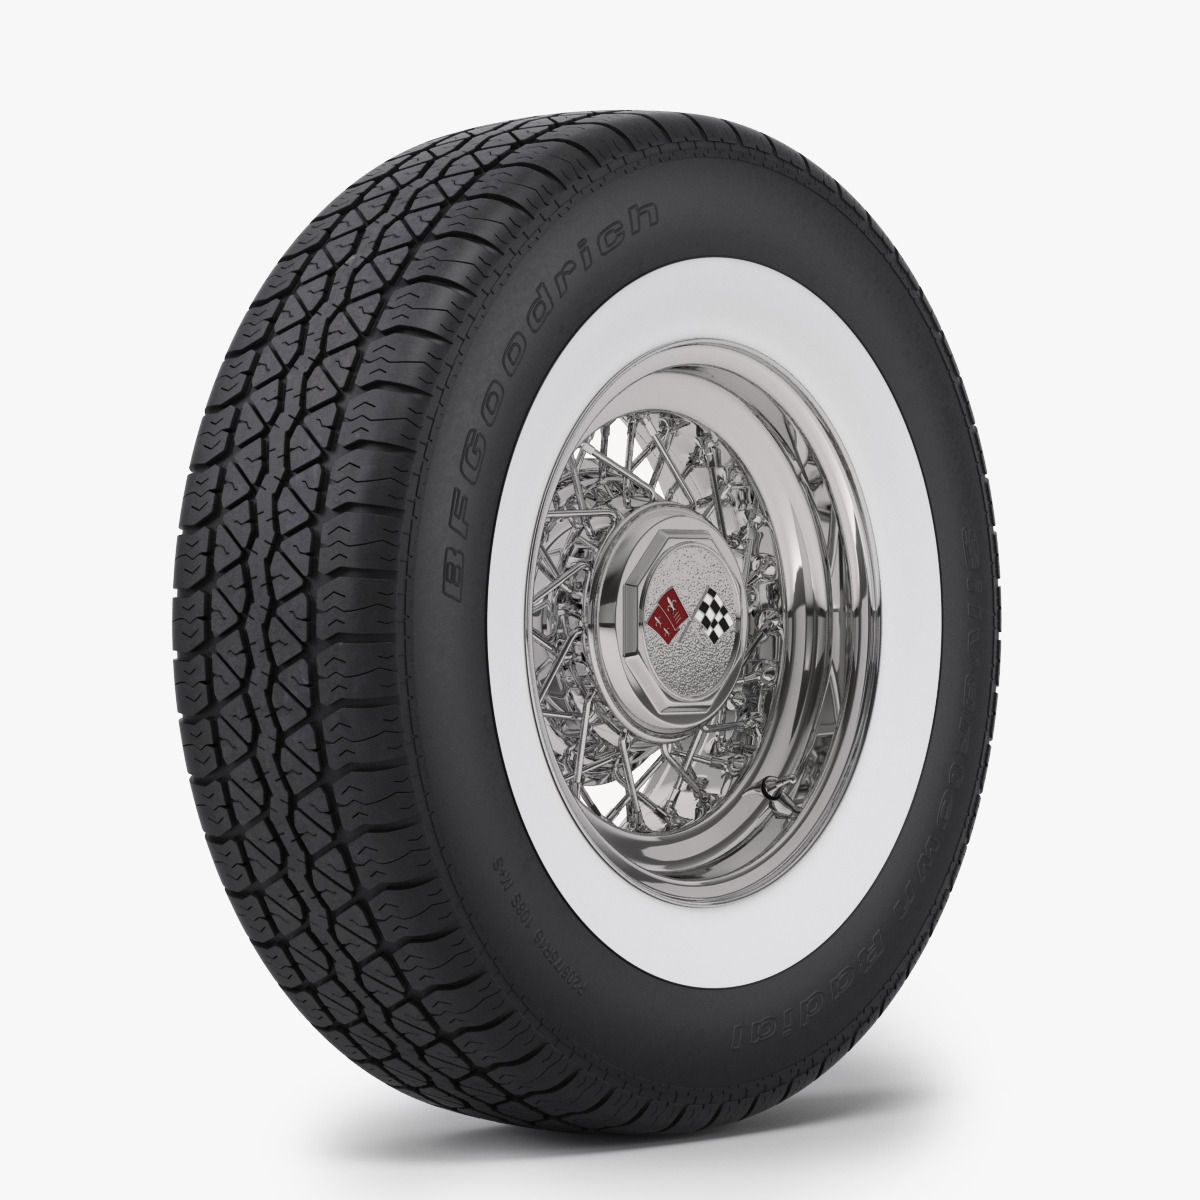 3D Classic Wire Wheel and Tire BFG | CGTrader